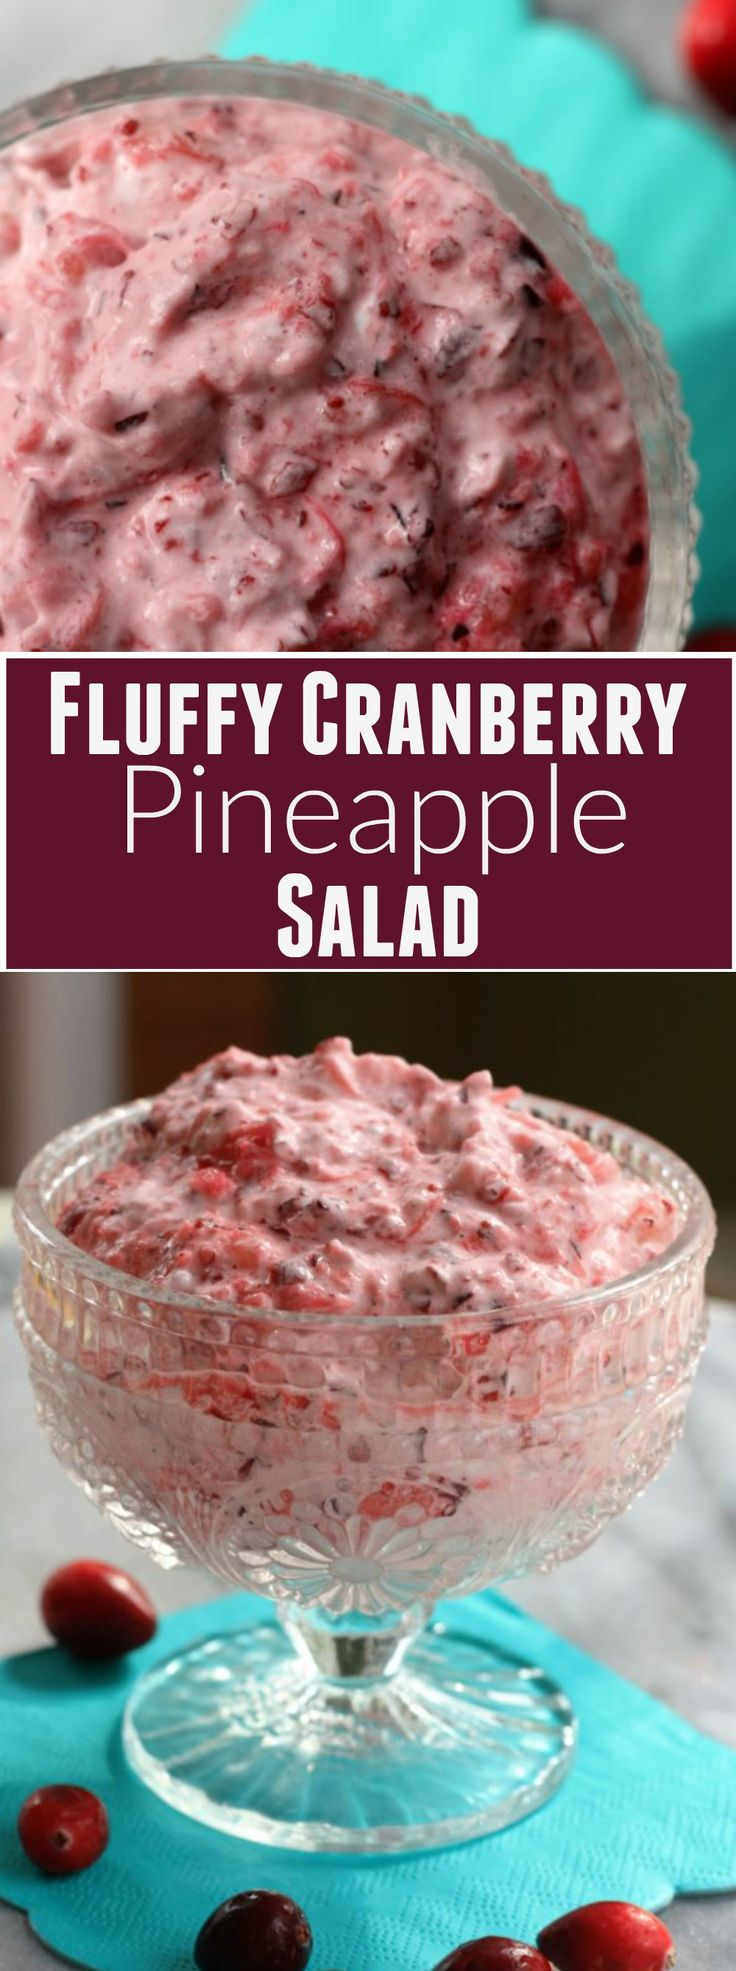 Fluffy Cranberry Pineapple Salad